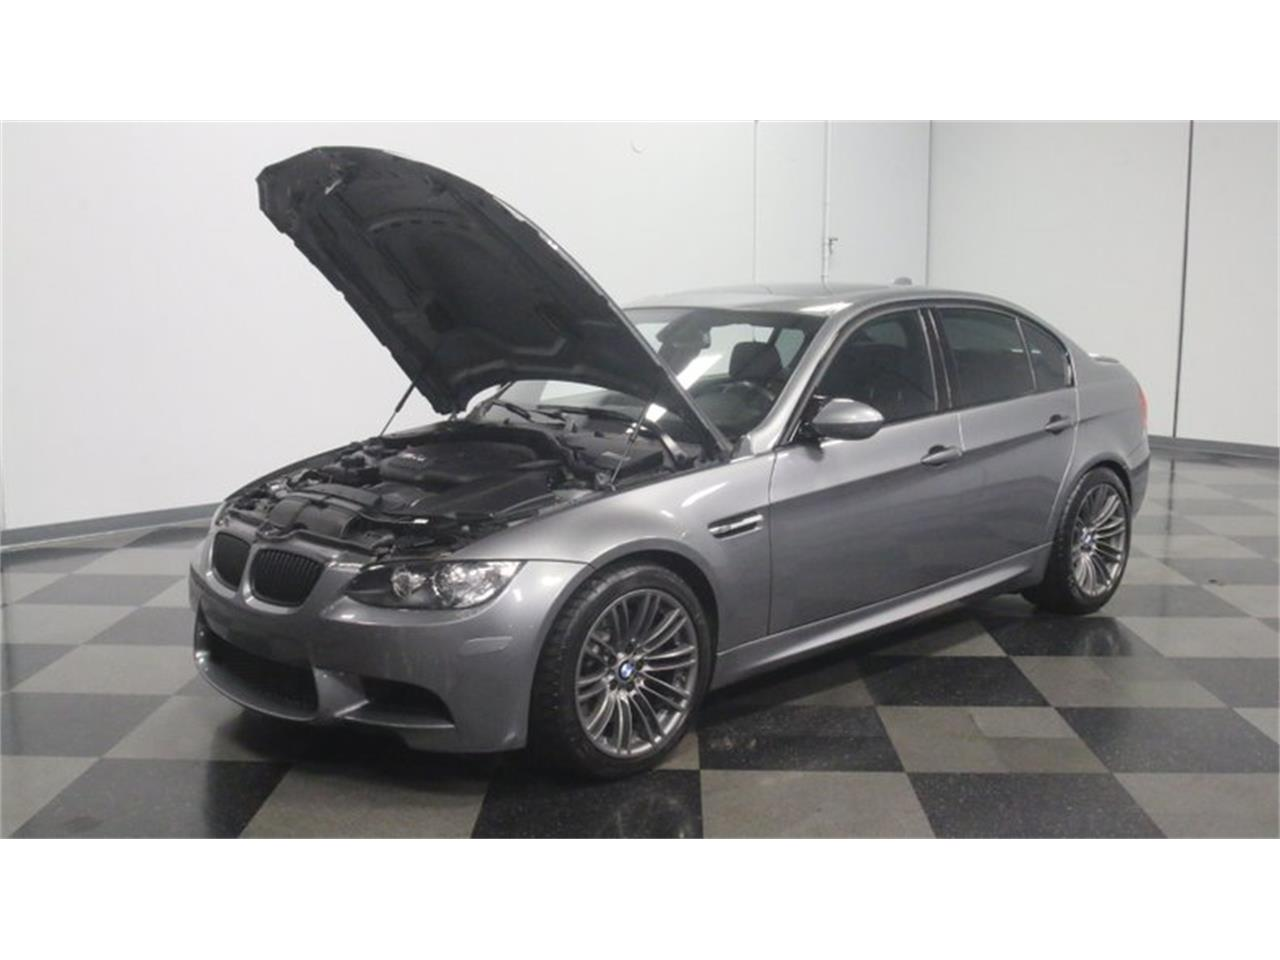 2010 BMW M3 for sale in Lithia Springs, GA – photo 34